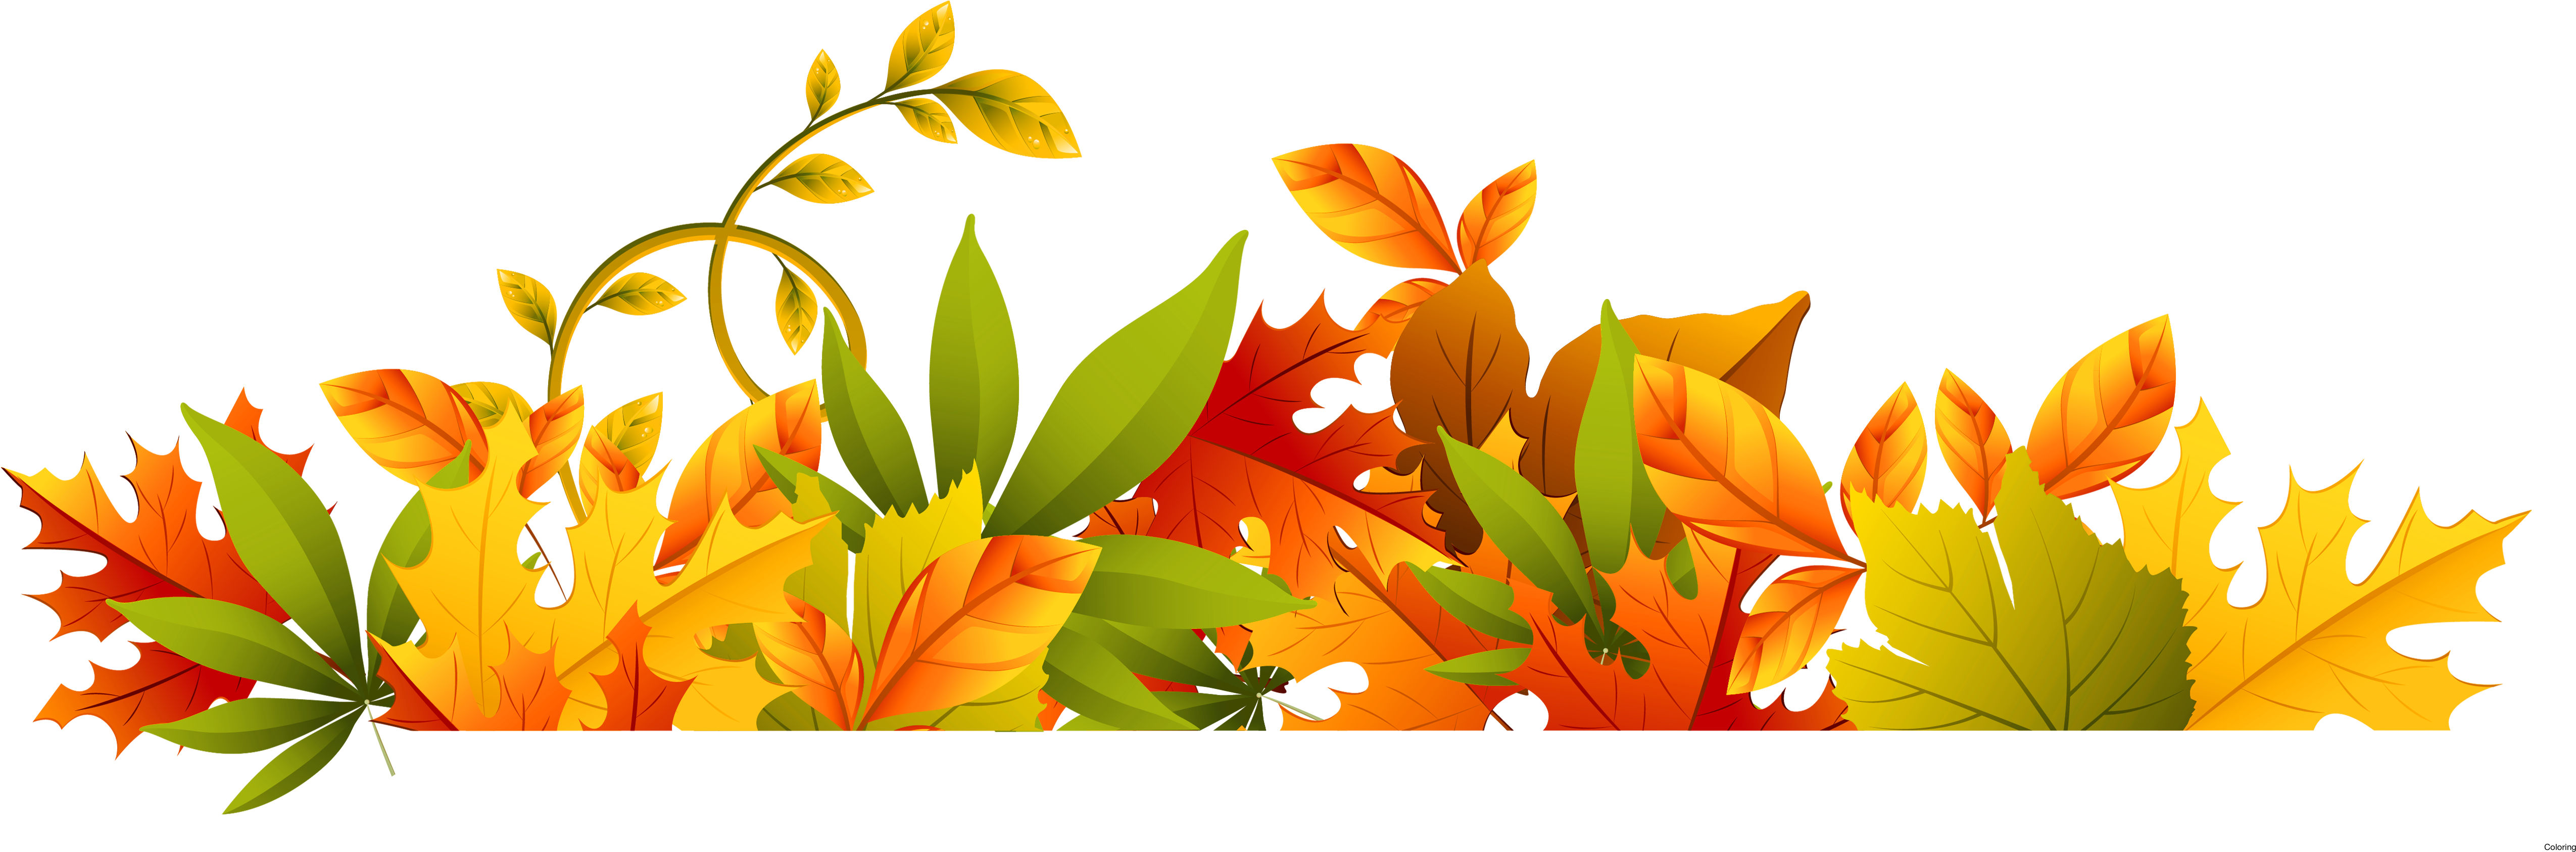 jpg royalty free download Free transparent download clip. Fall clipart.